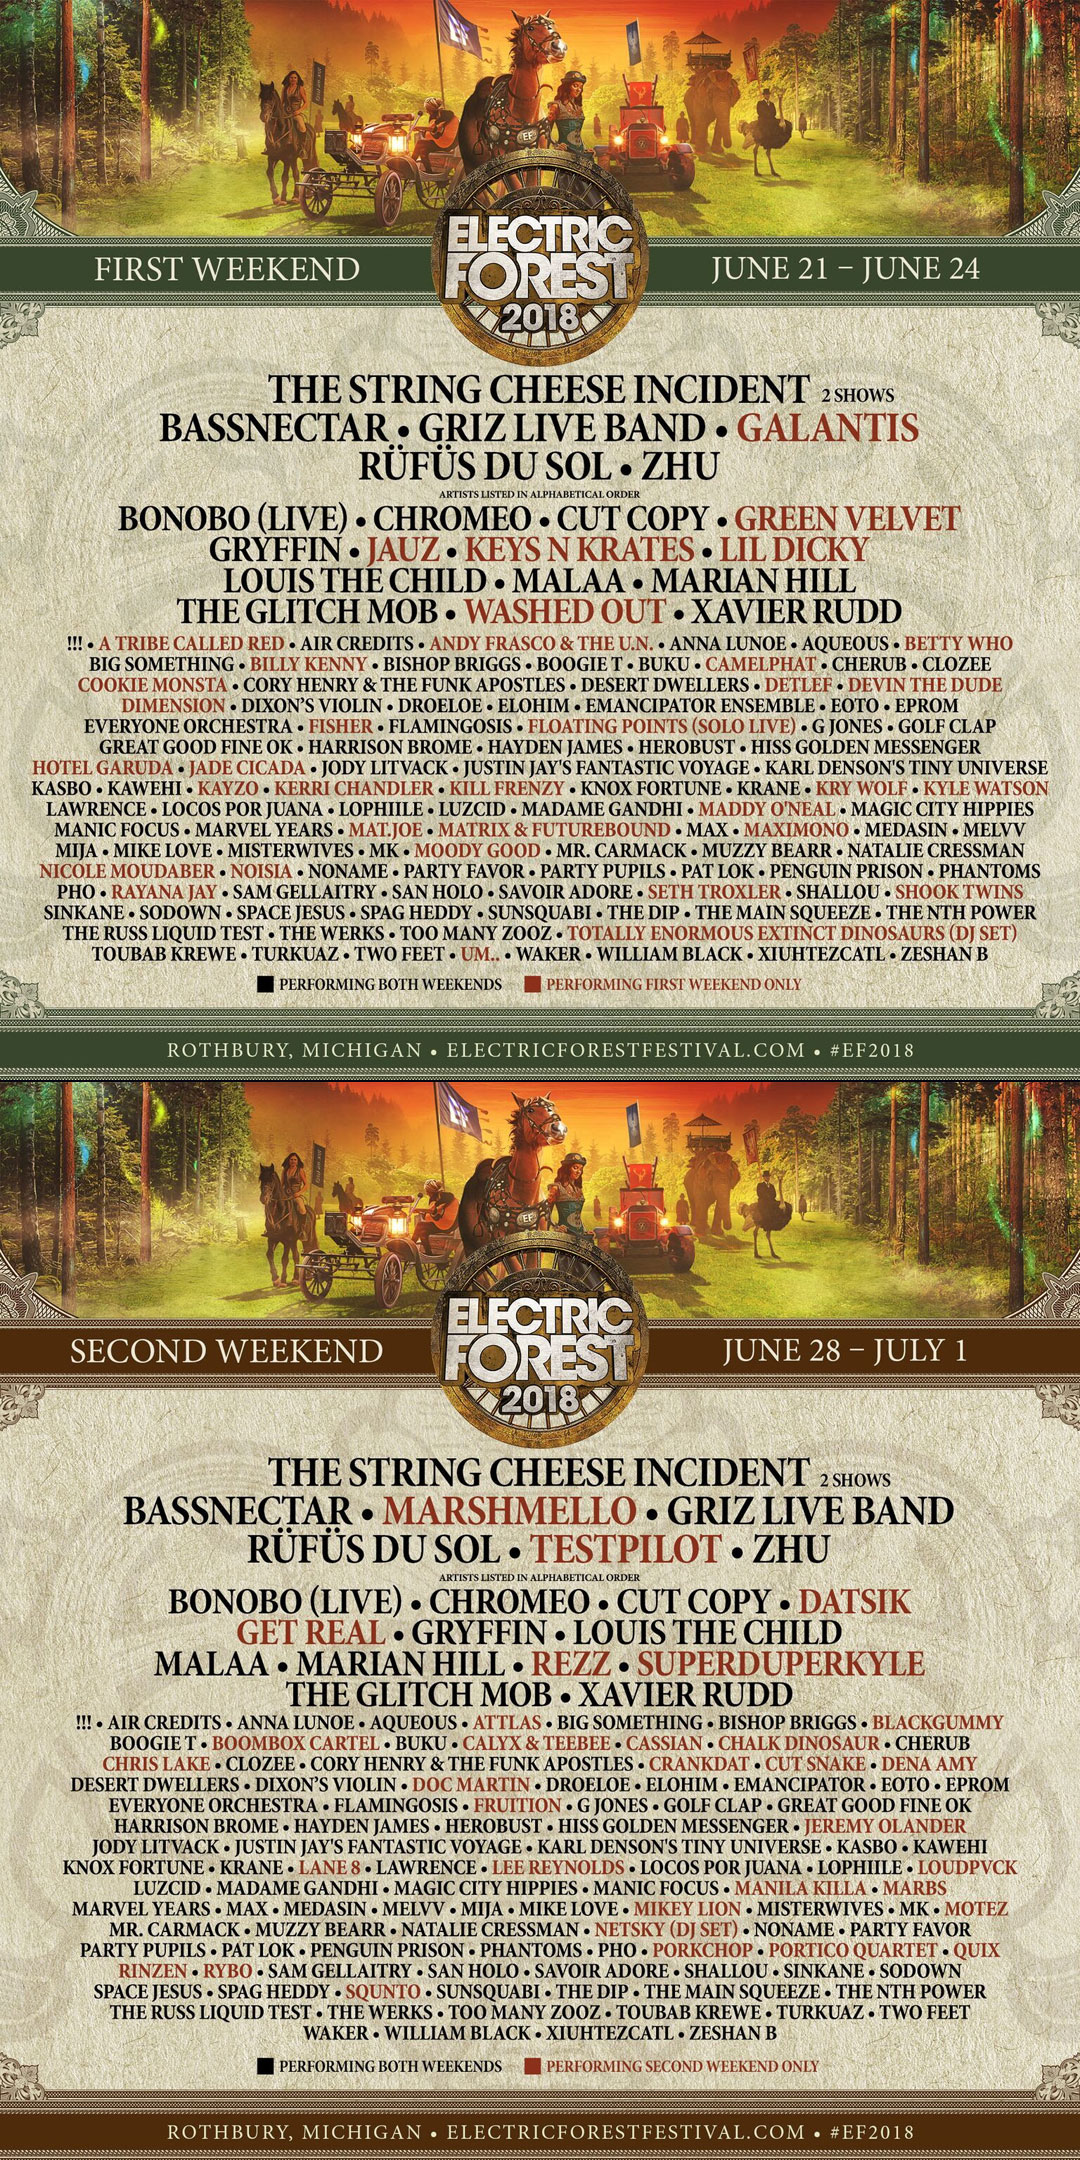 Electric Forest 2018 Initial Lineup